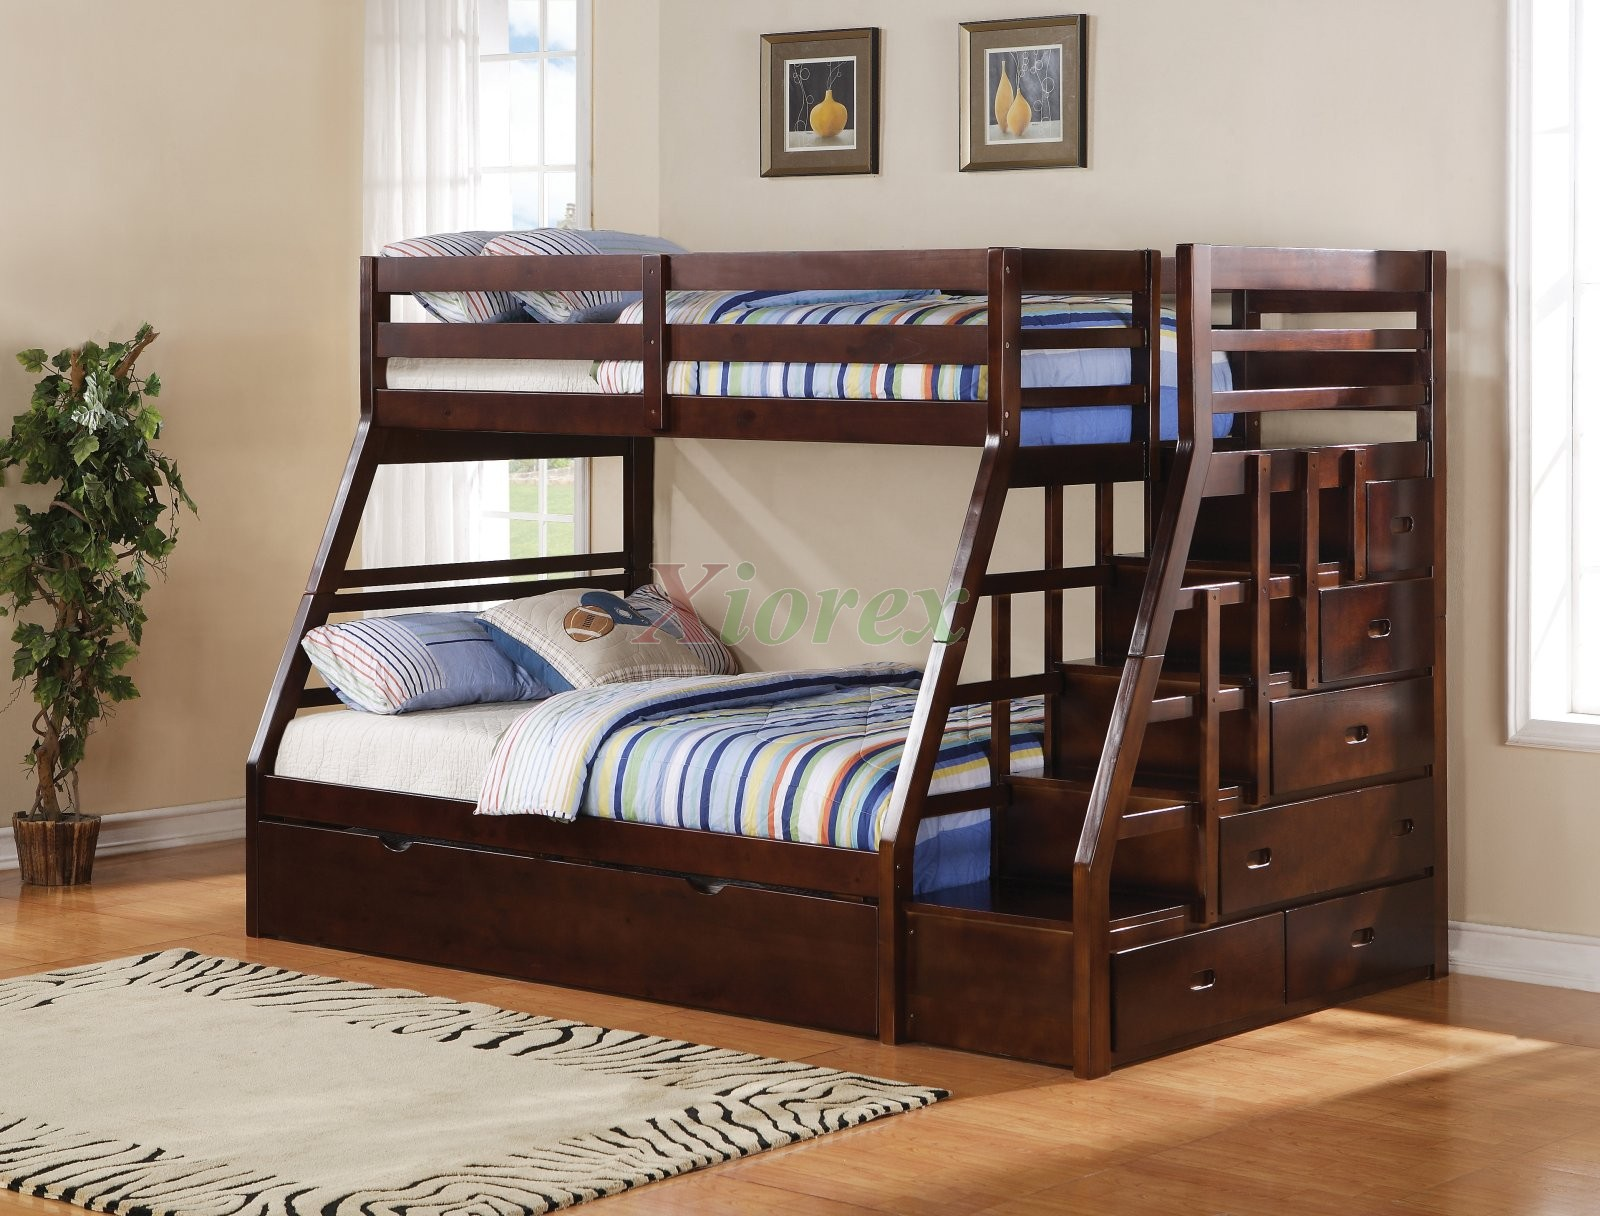 Taurus Twin Full Bunk Bed With Stairs And Trundle In